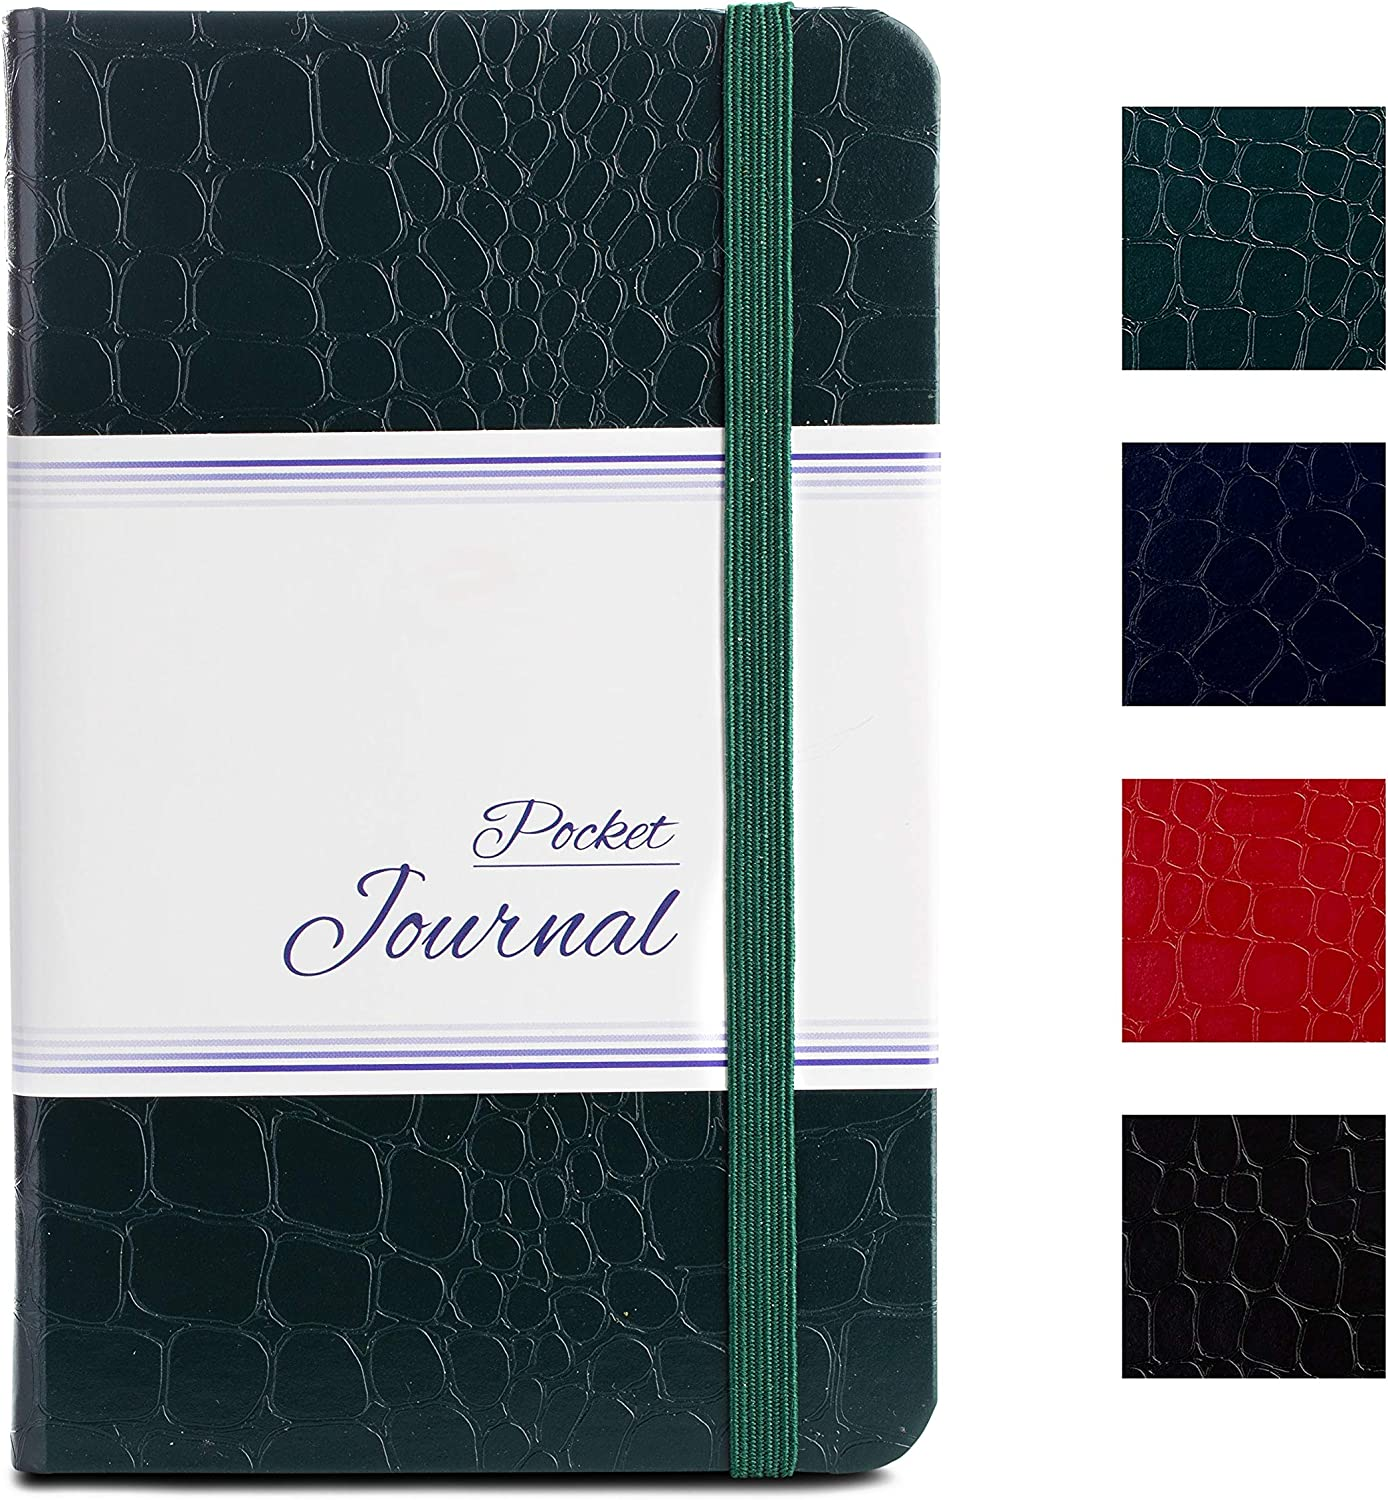 Pocket Notebook | Journal by CAMOLEAF - 3.5 x 5.5 - Small / Mini Size - Hardcover Crocodile Faux Leather Textured - Premium Thick Acid-Free Ivory Paper - Lightly Ruled - (Green)